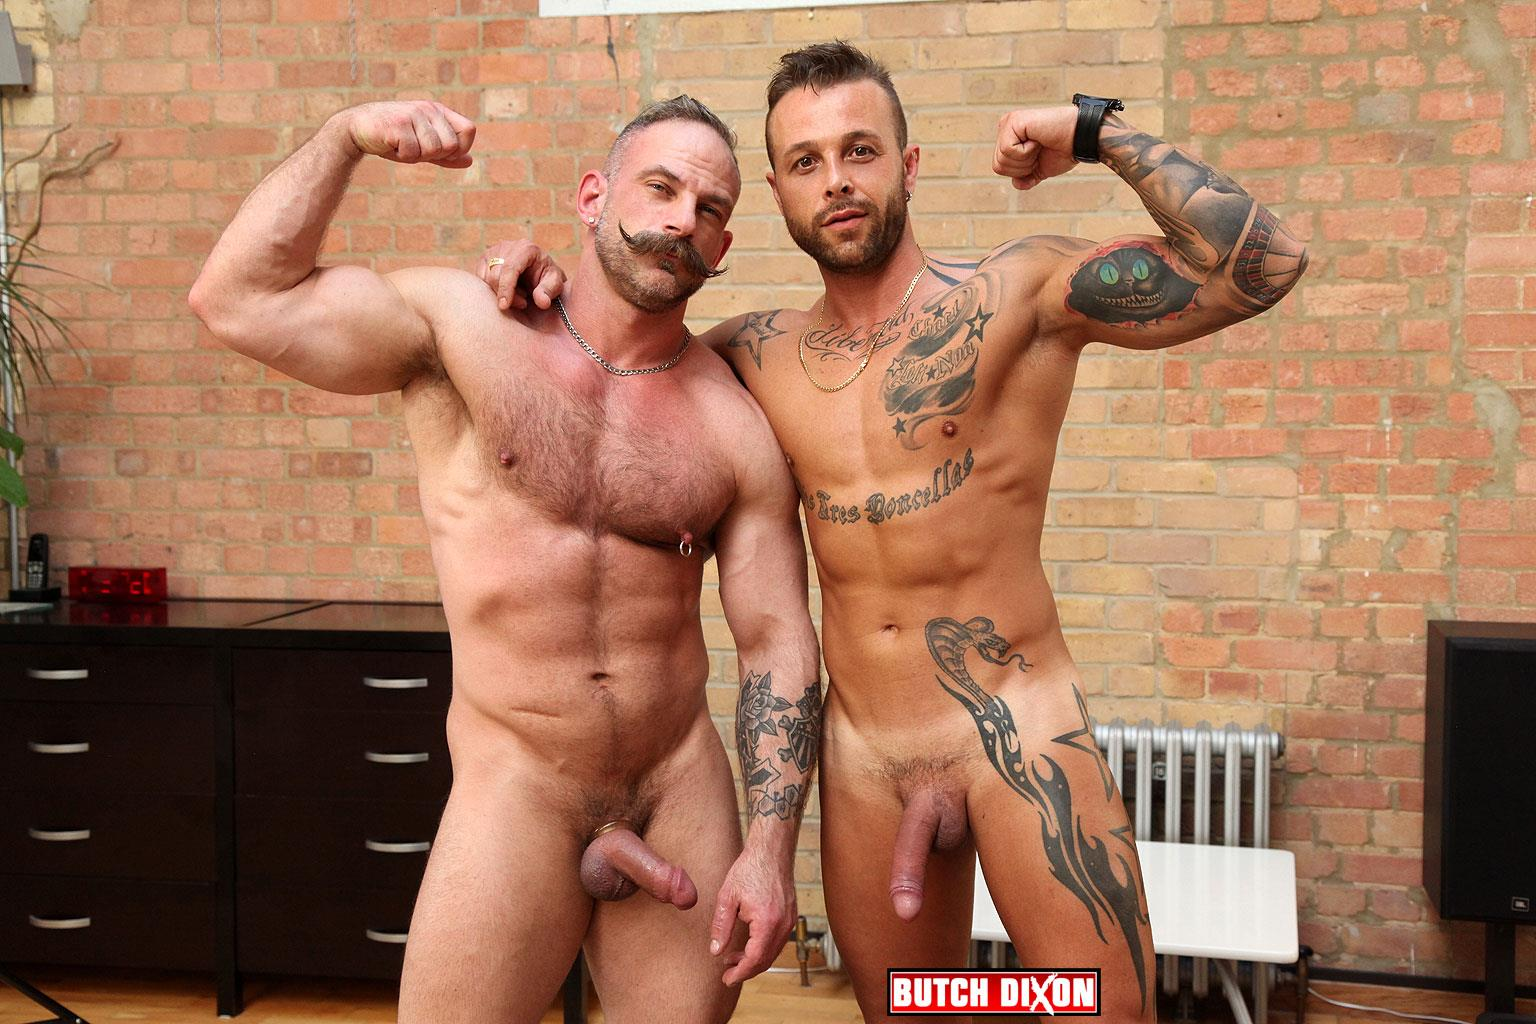 Butch-Dixon-Samuel-Colt-and-Frank-Valencia-Hairy-Muscle-Daddy-Getting-Fucked-By-Latino-Cock-Amateur-Gay-Porn-10 Happy Fathers Day: Hairy Muscle Daddy Samuel Colt Taking A Big Cock Up The Ass